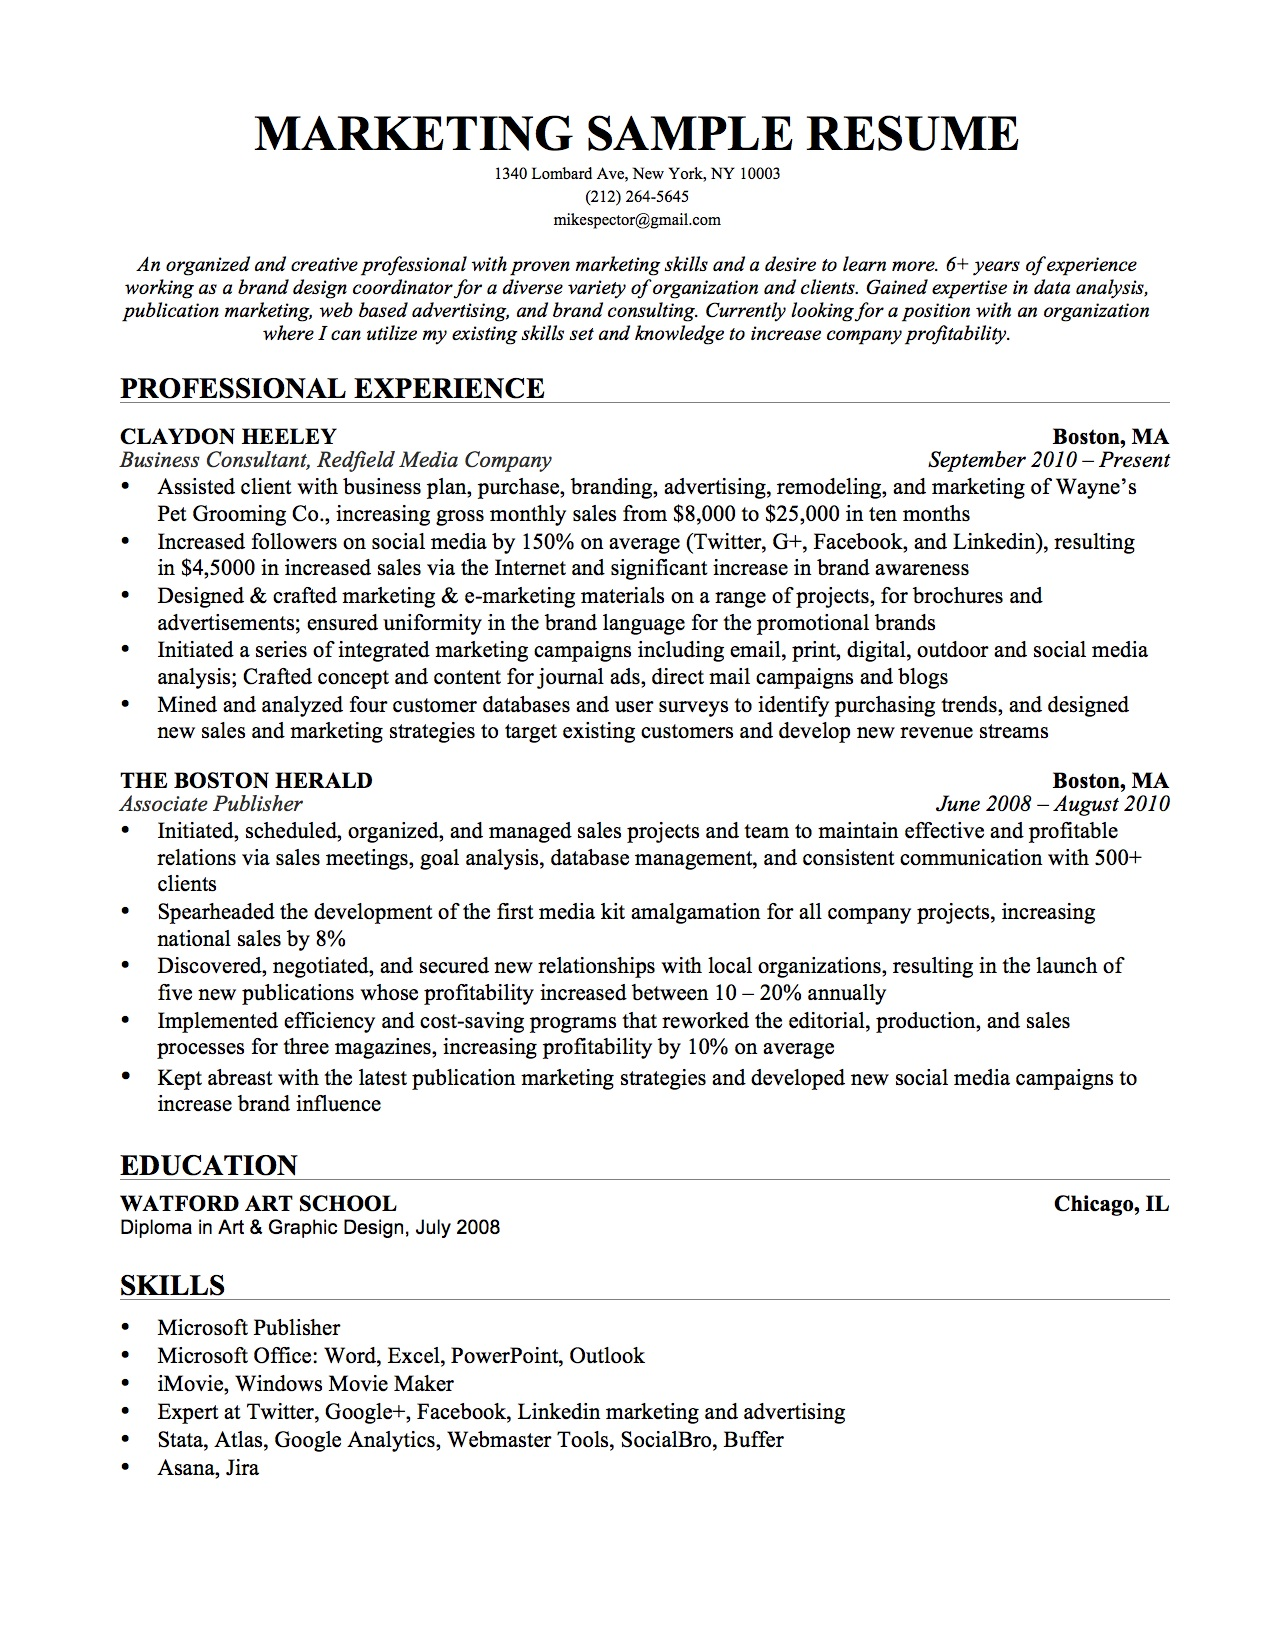 multiple positions one job resume example ceo resume page design com professional resume template services example ceo resume page design com professional resume template services